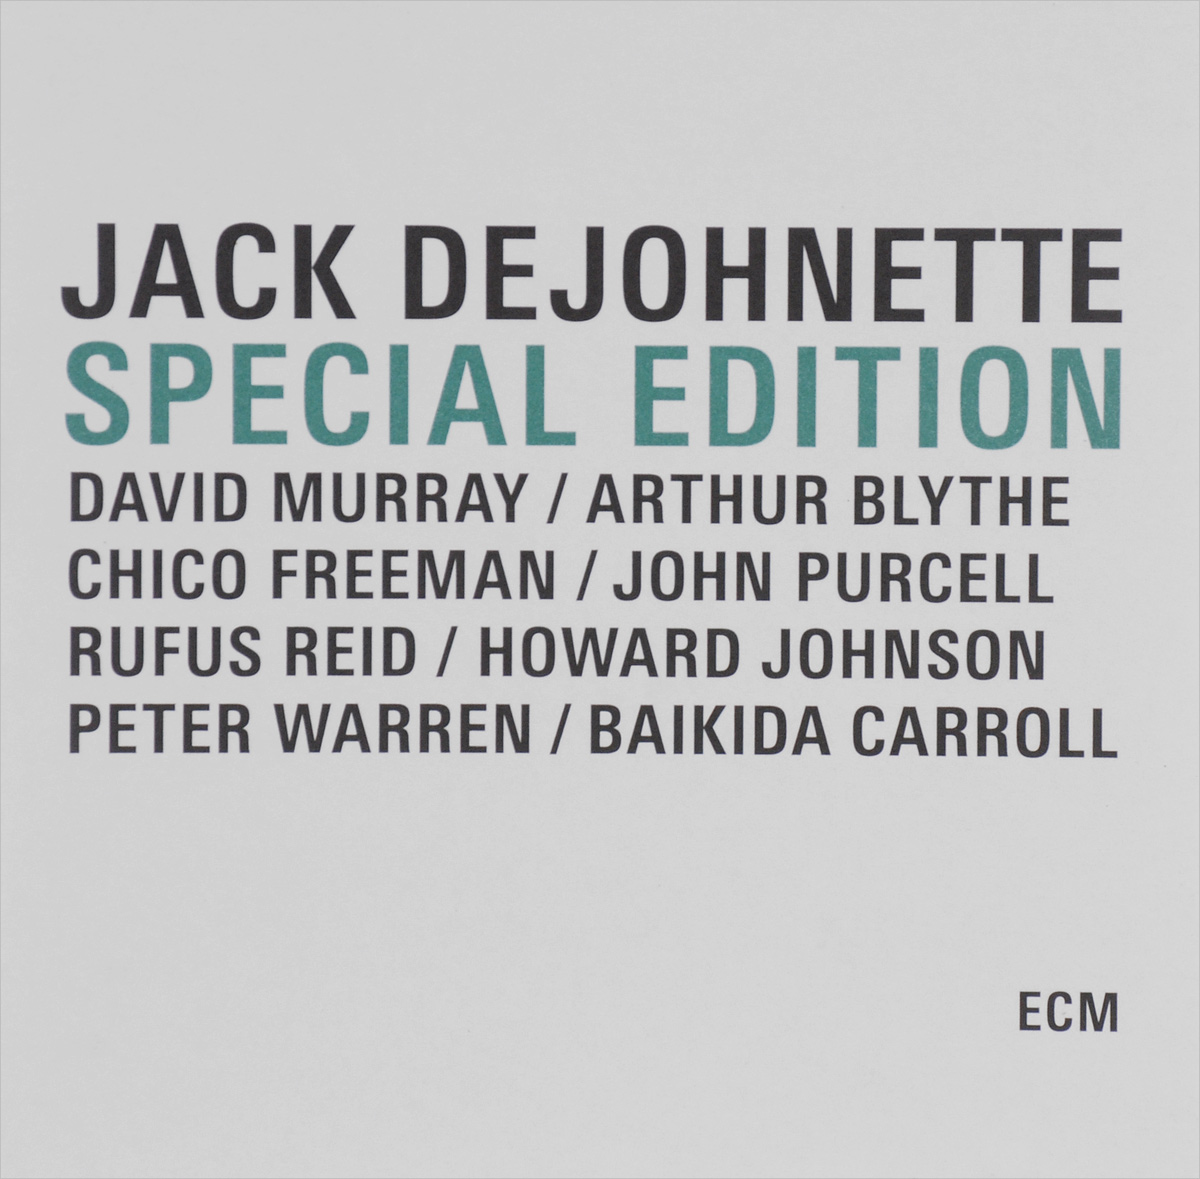 SPECIAL EDITION (BOX) (INCLUDED ECM 1152, 1189, 1244, 1280)